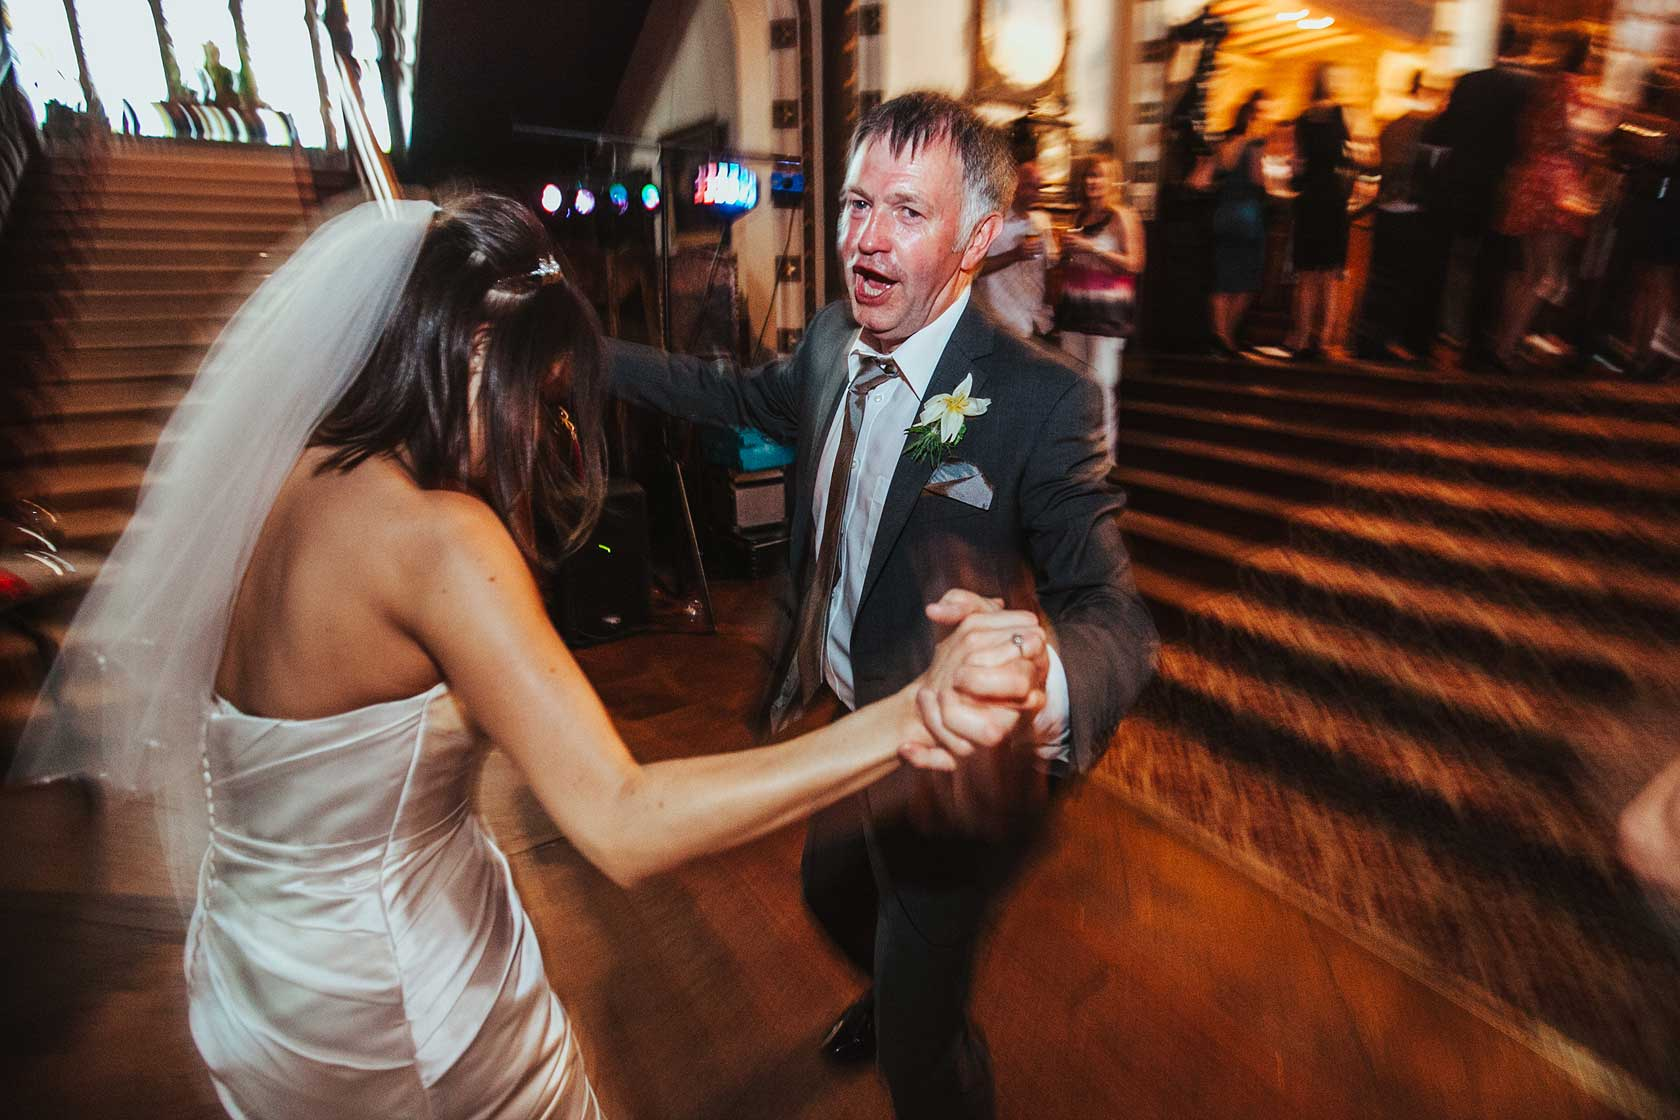 Reportage Wedding Photography at Carlton Towers